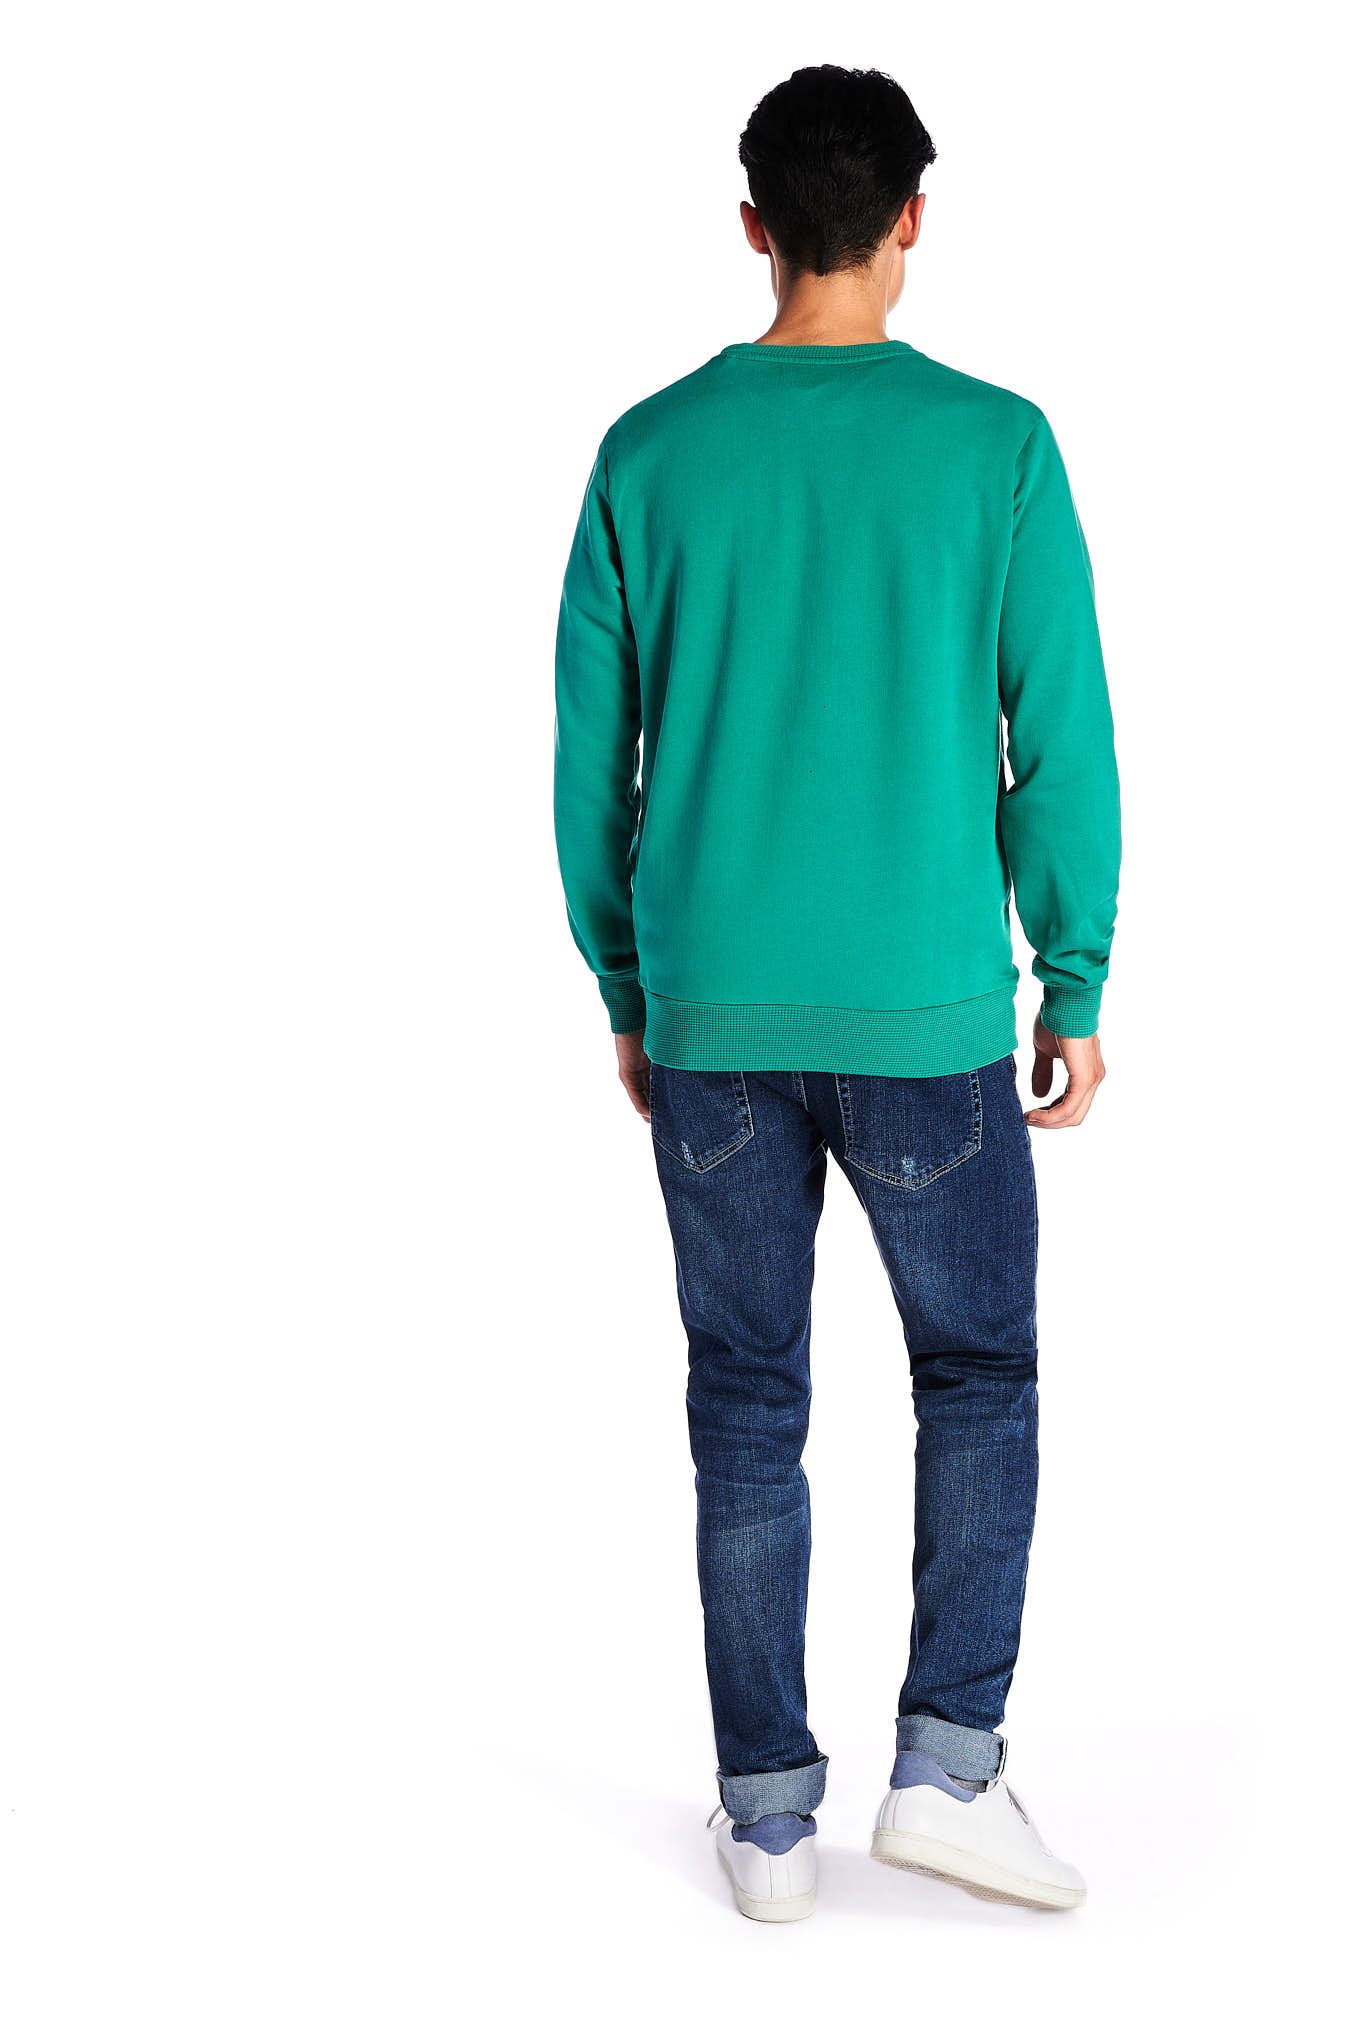 Sweatshirt Green Sport Man